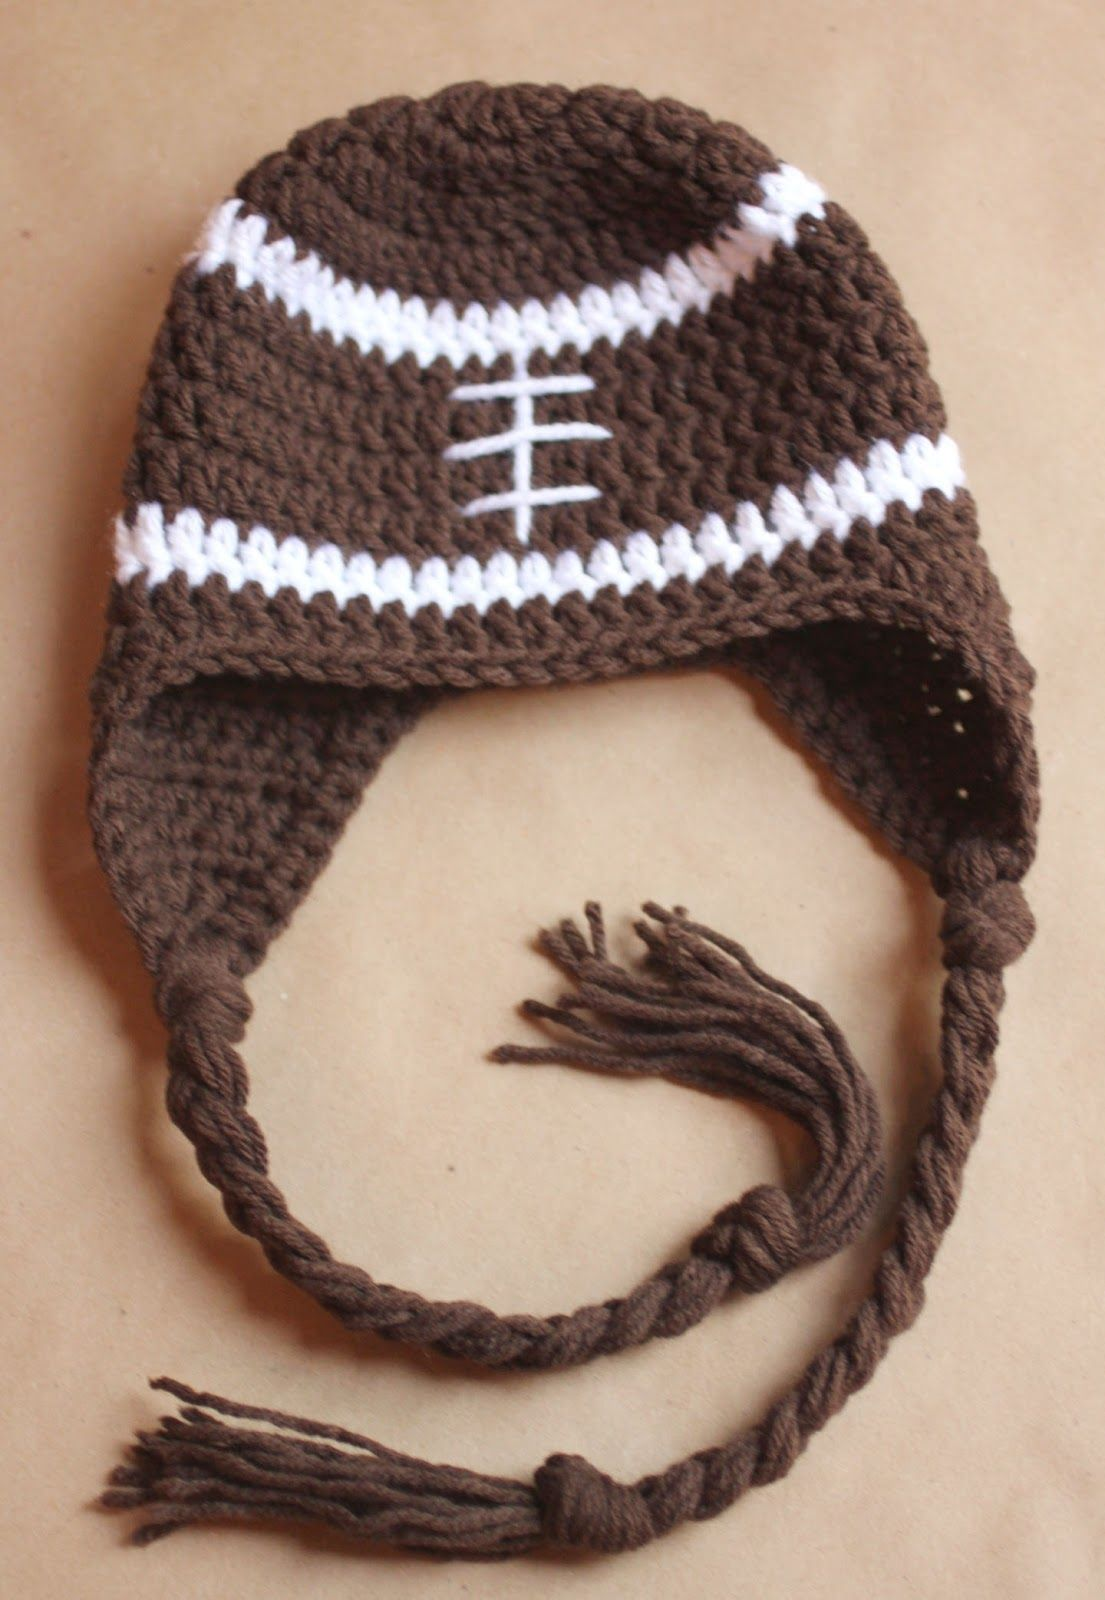 c7d84e9116eb2 Free Crochet Football Earflap Hat Pattern